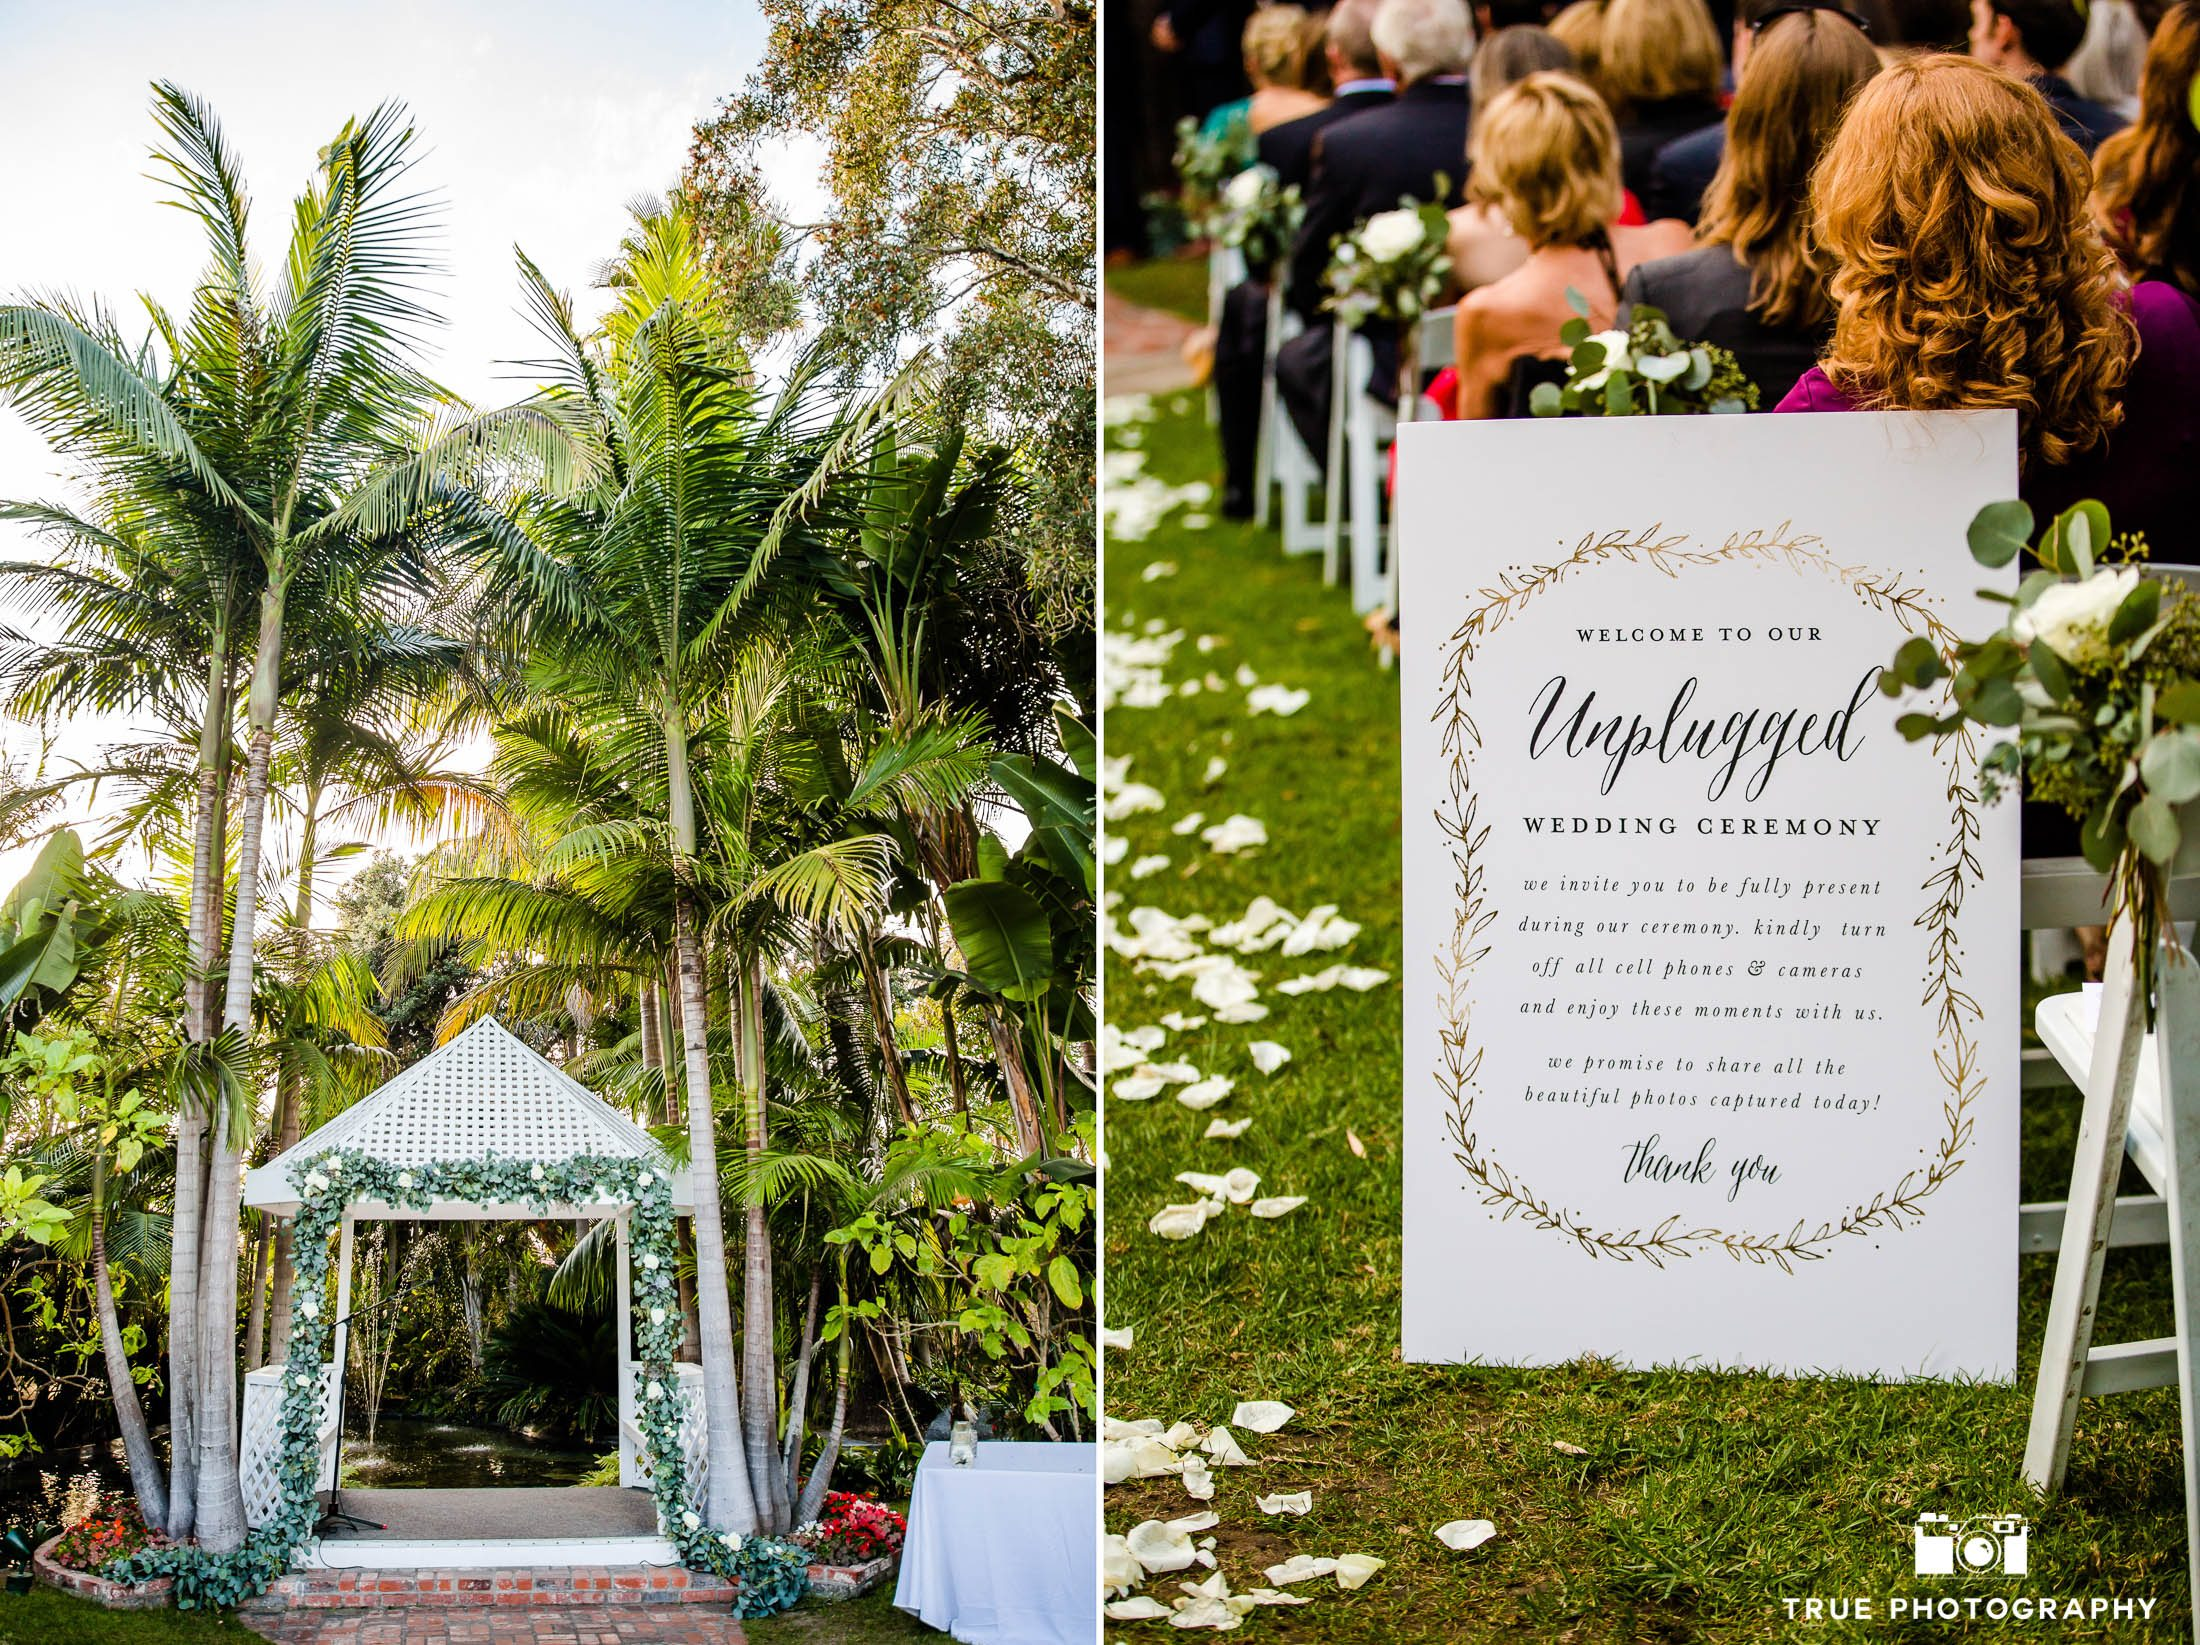 Arch made of eucalyptus garlands at unplugged wedding